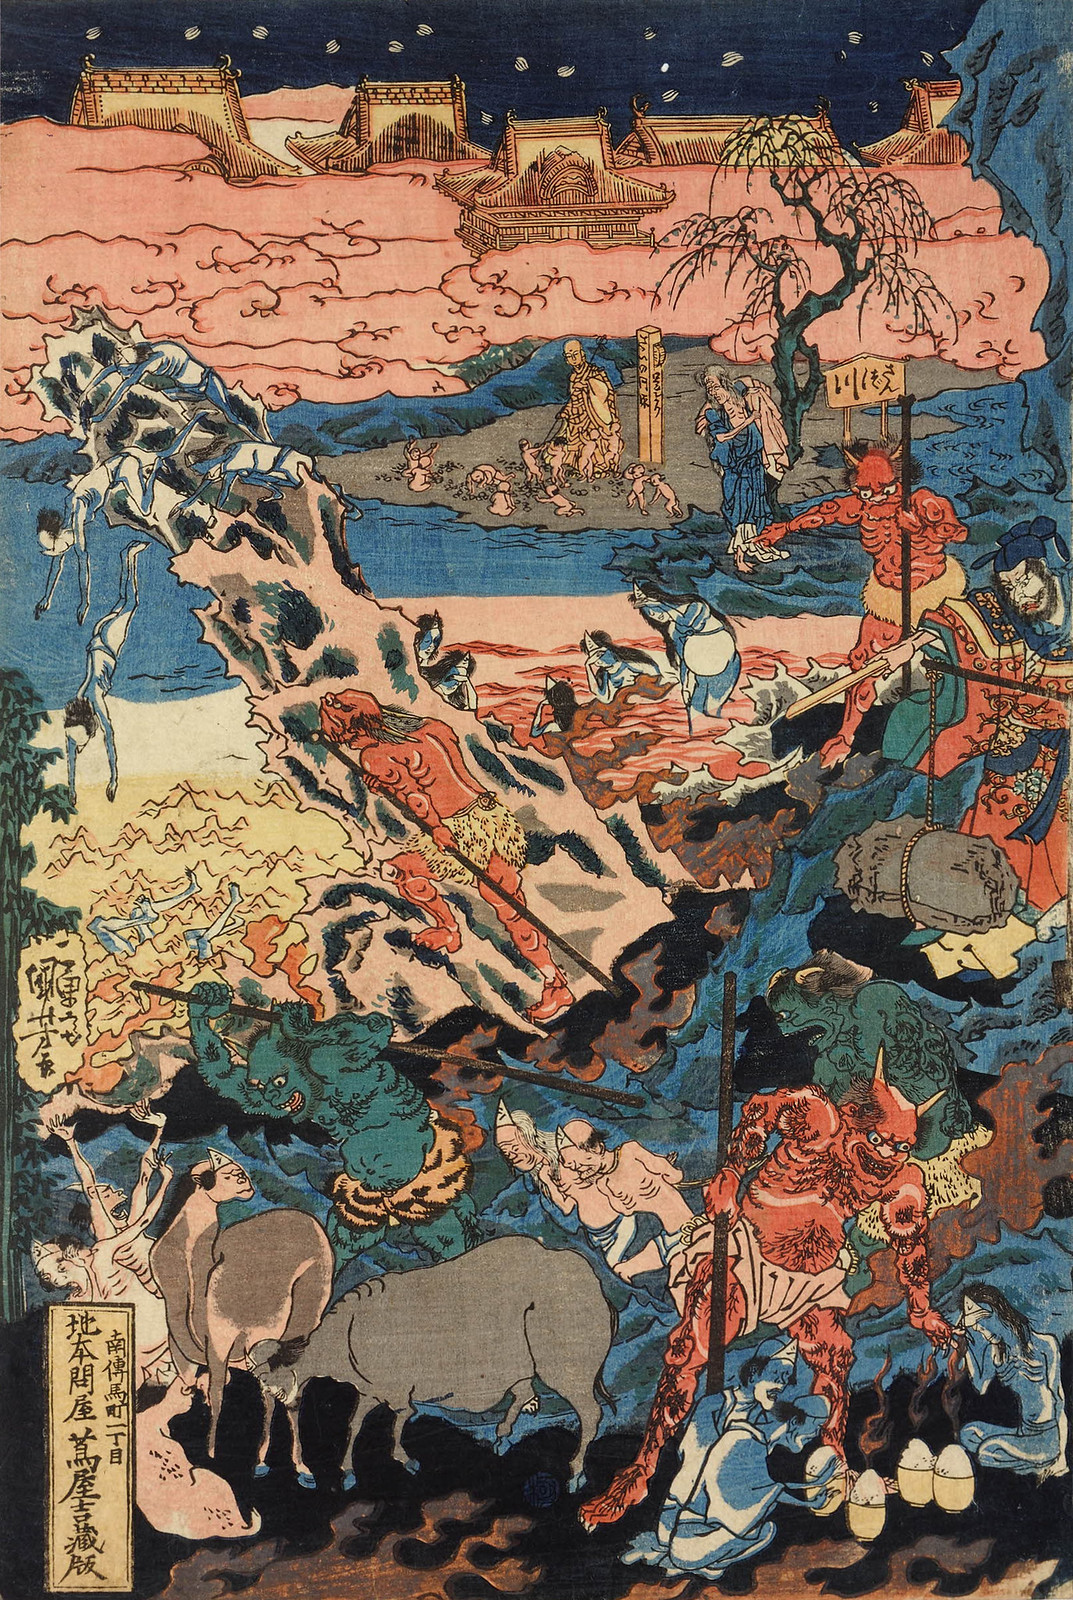 Utagawa Kuniyoshi - Various ghosts, devil-like figures, and the King of Hell lording over his domain, Edo Period (left panel)